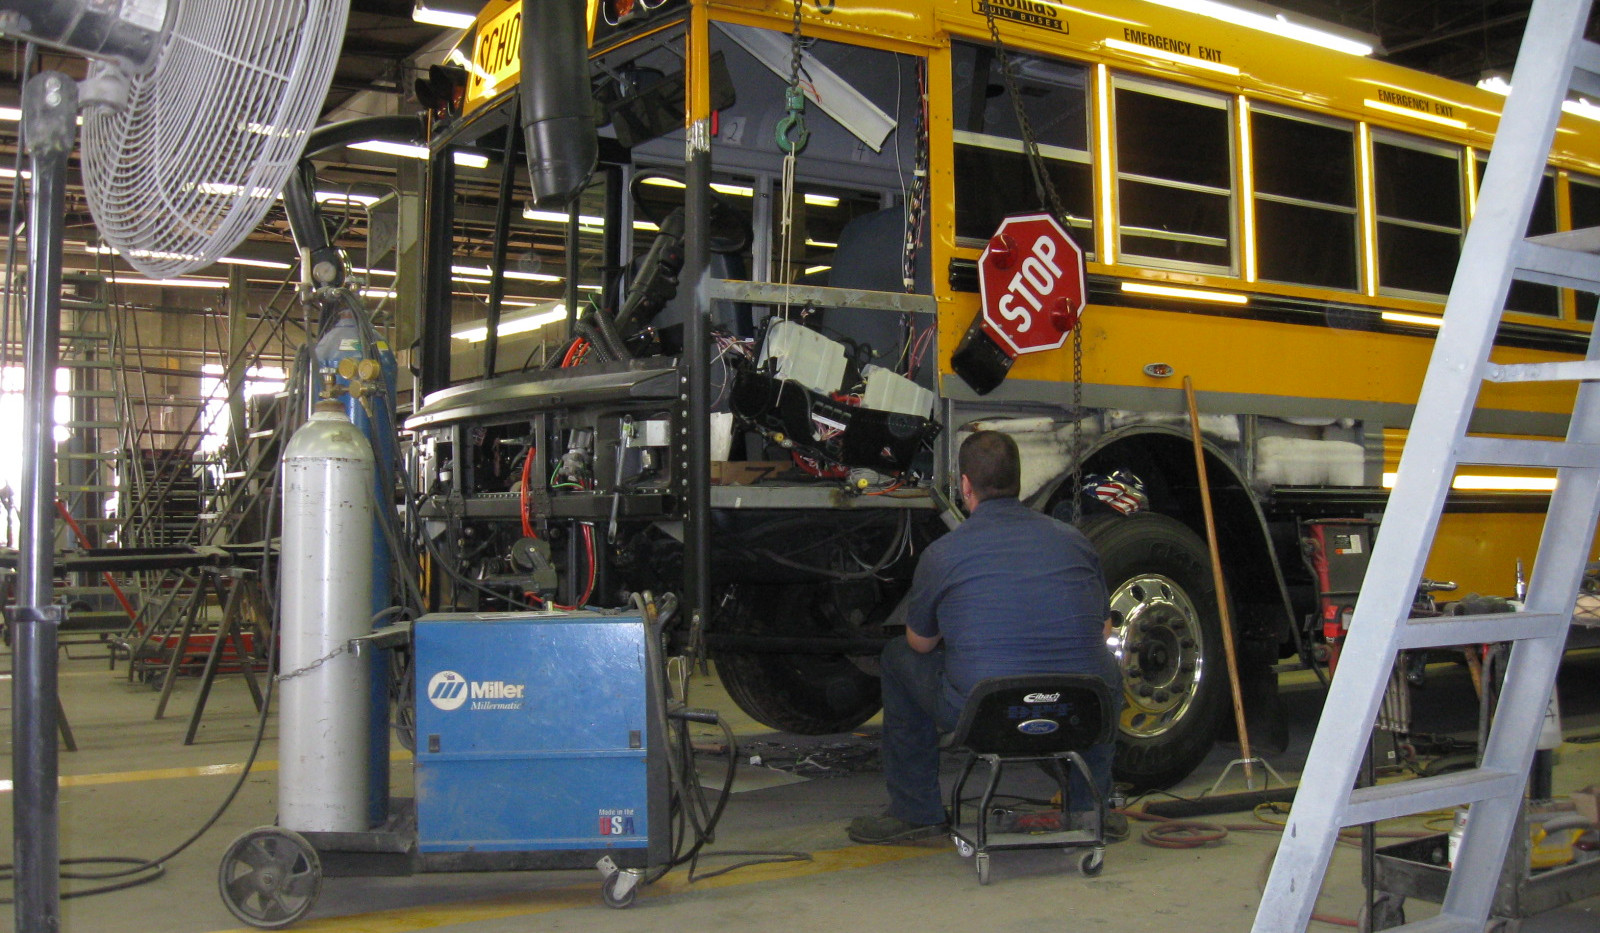 Bus Repair in Progress.JPG